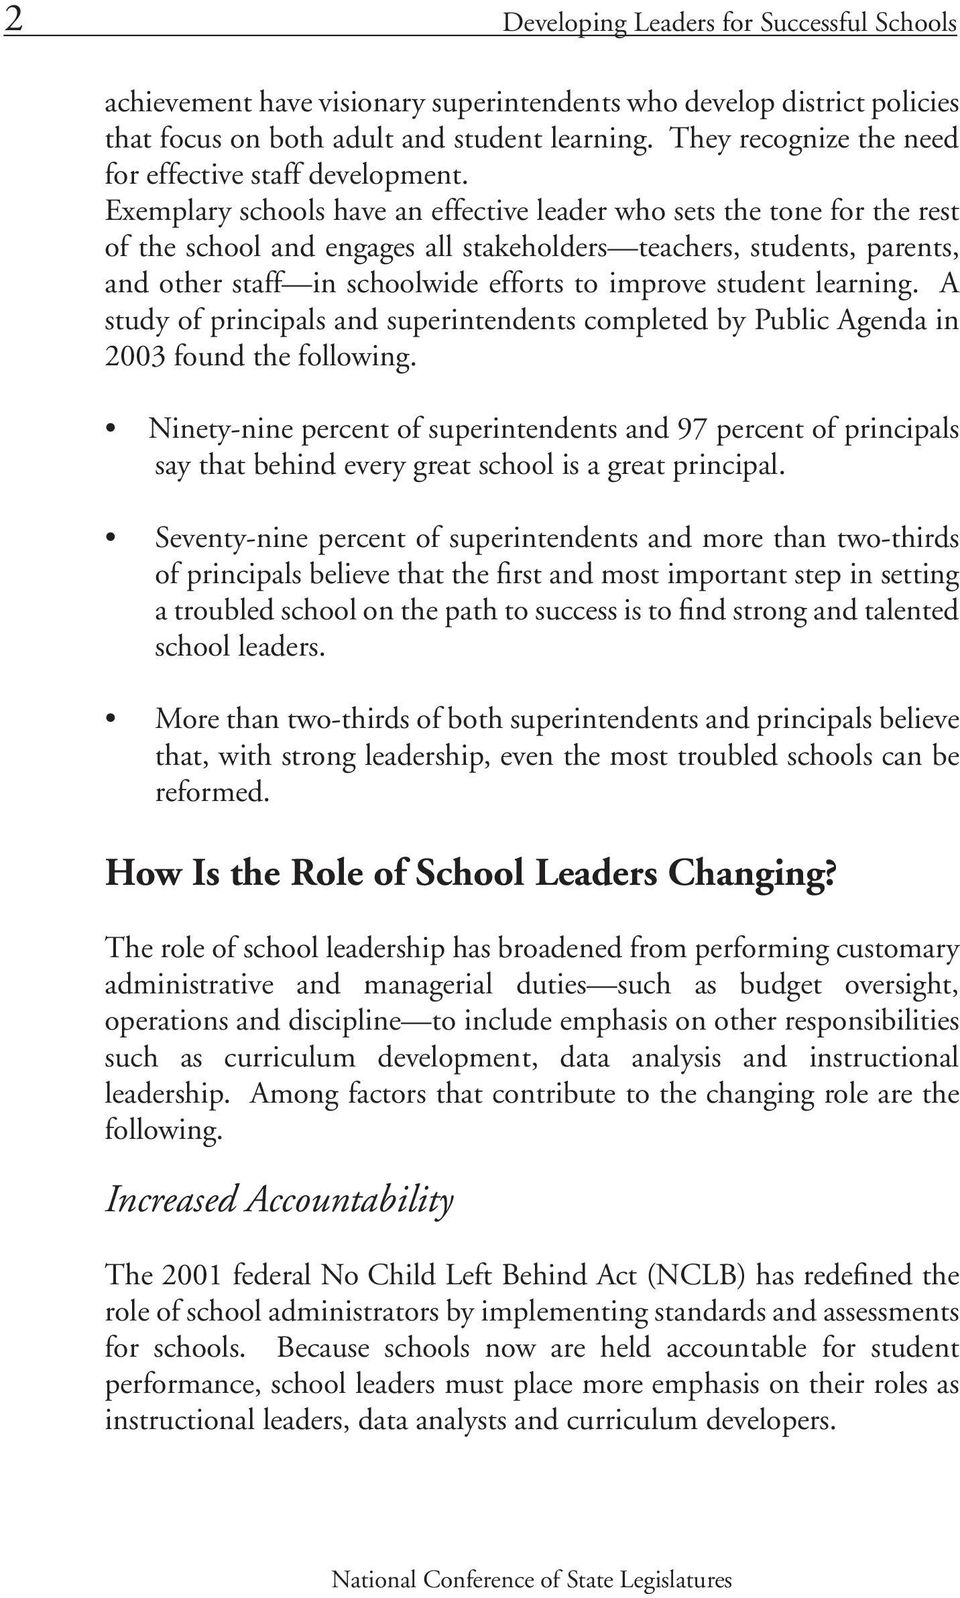 Exemplary schools have an effective leader who sets the tone for the rest of the school and engages all stakeholders teachers, students, parents, and other staff in schoolwide efforts to improve